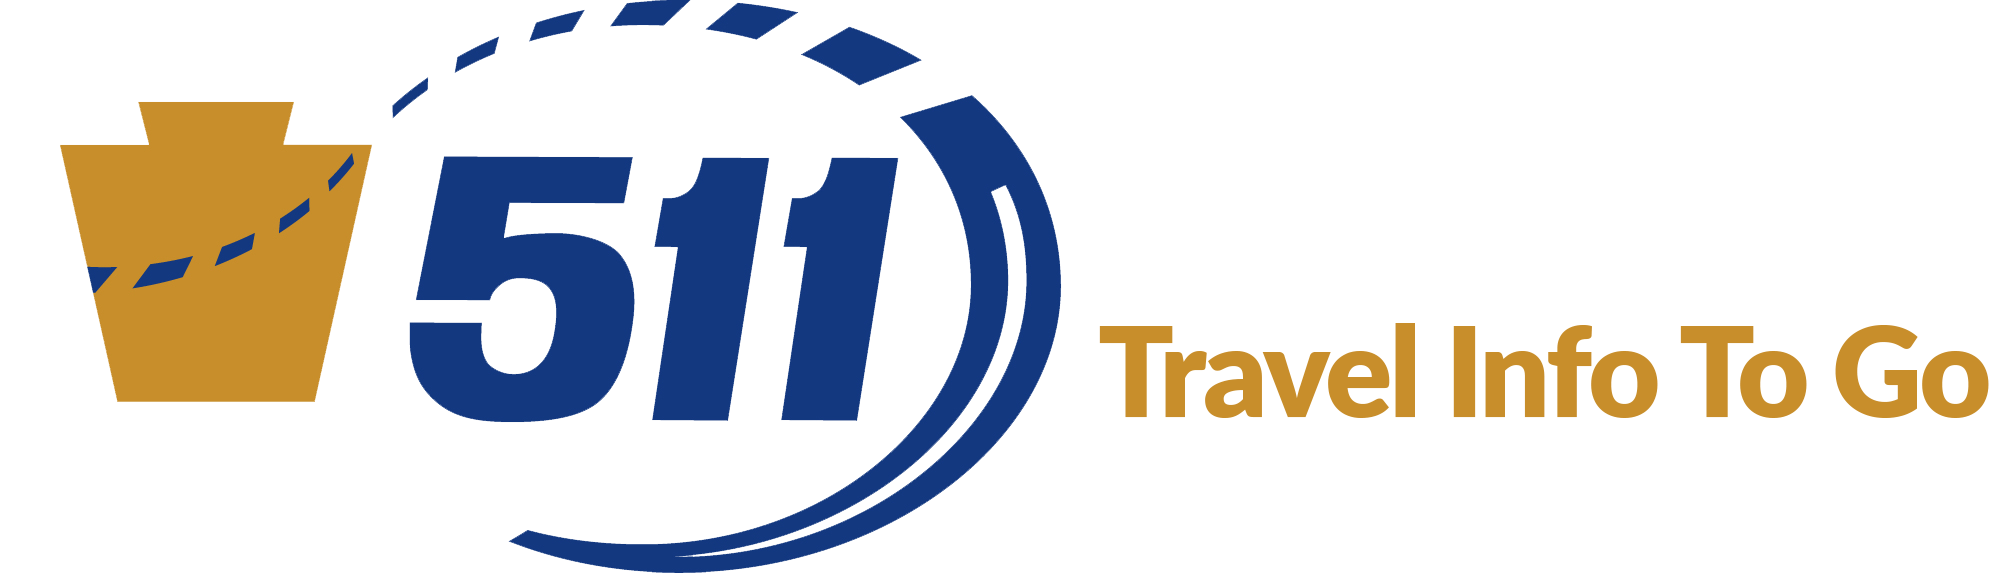 PA511 Travel Info To Go